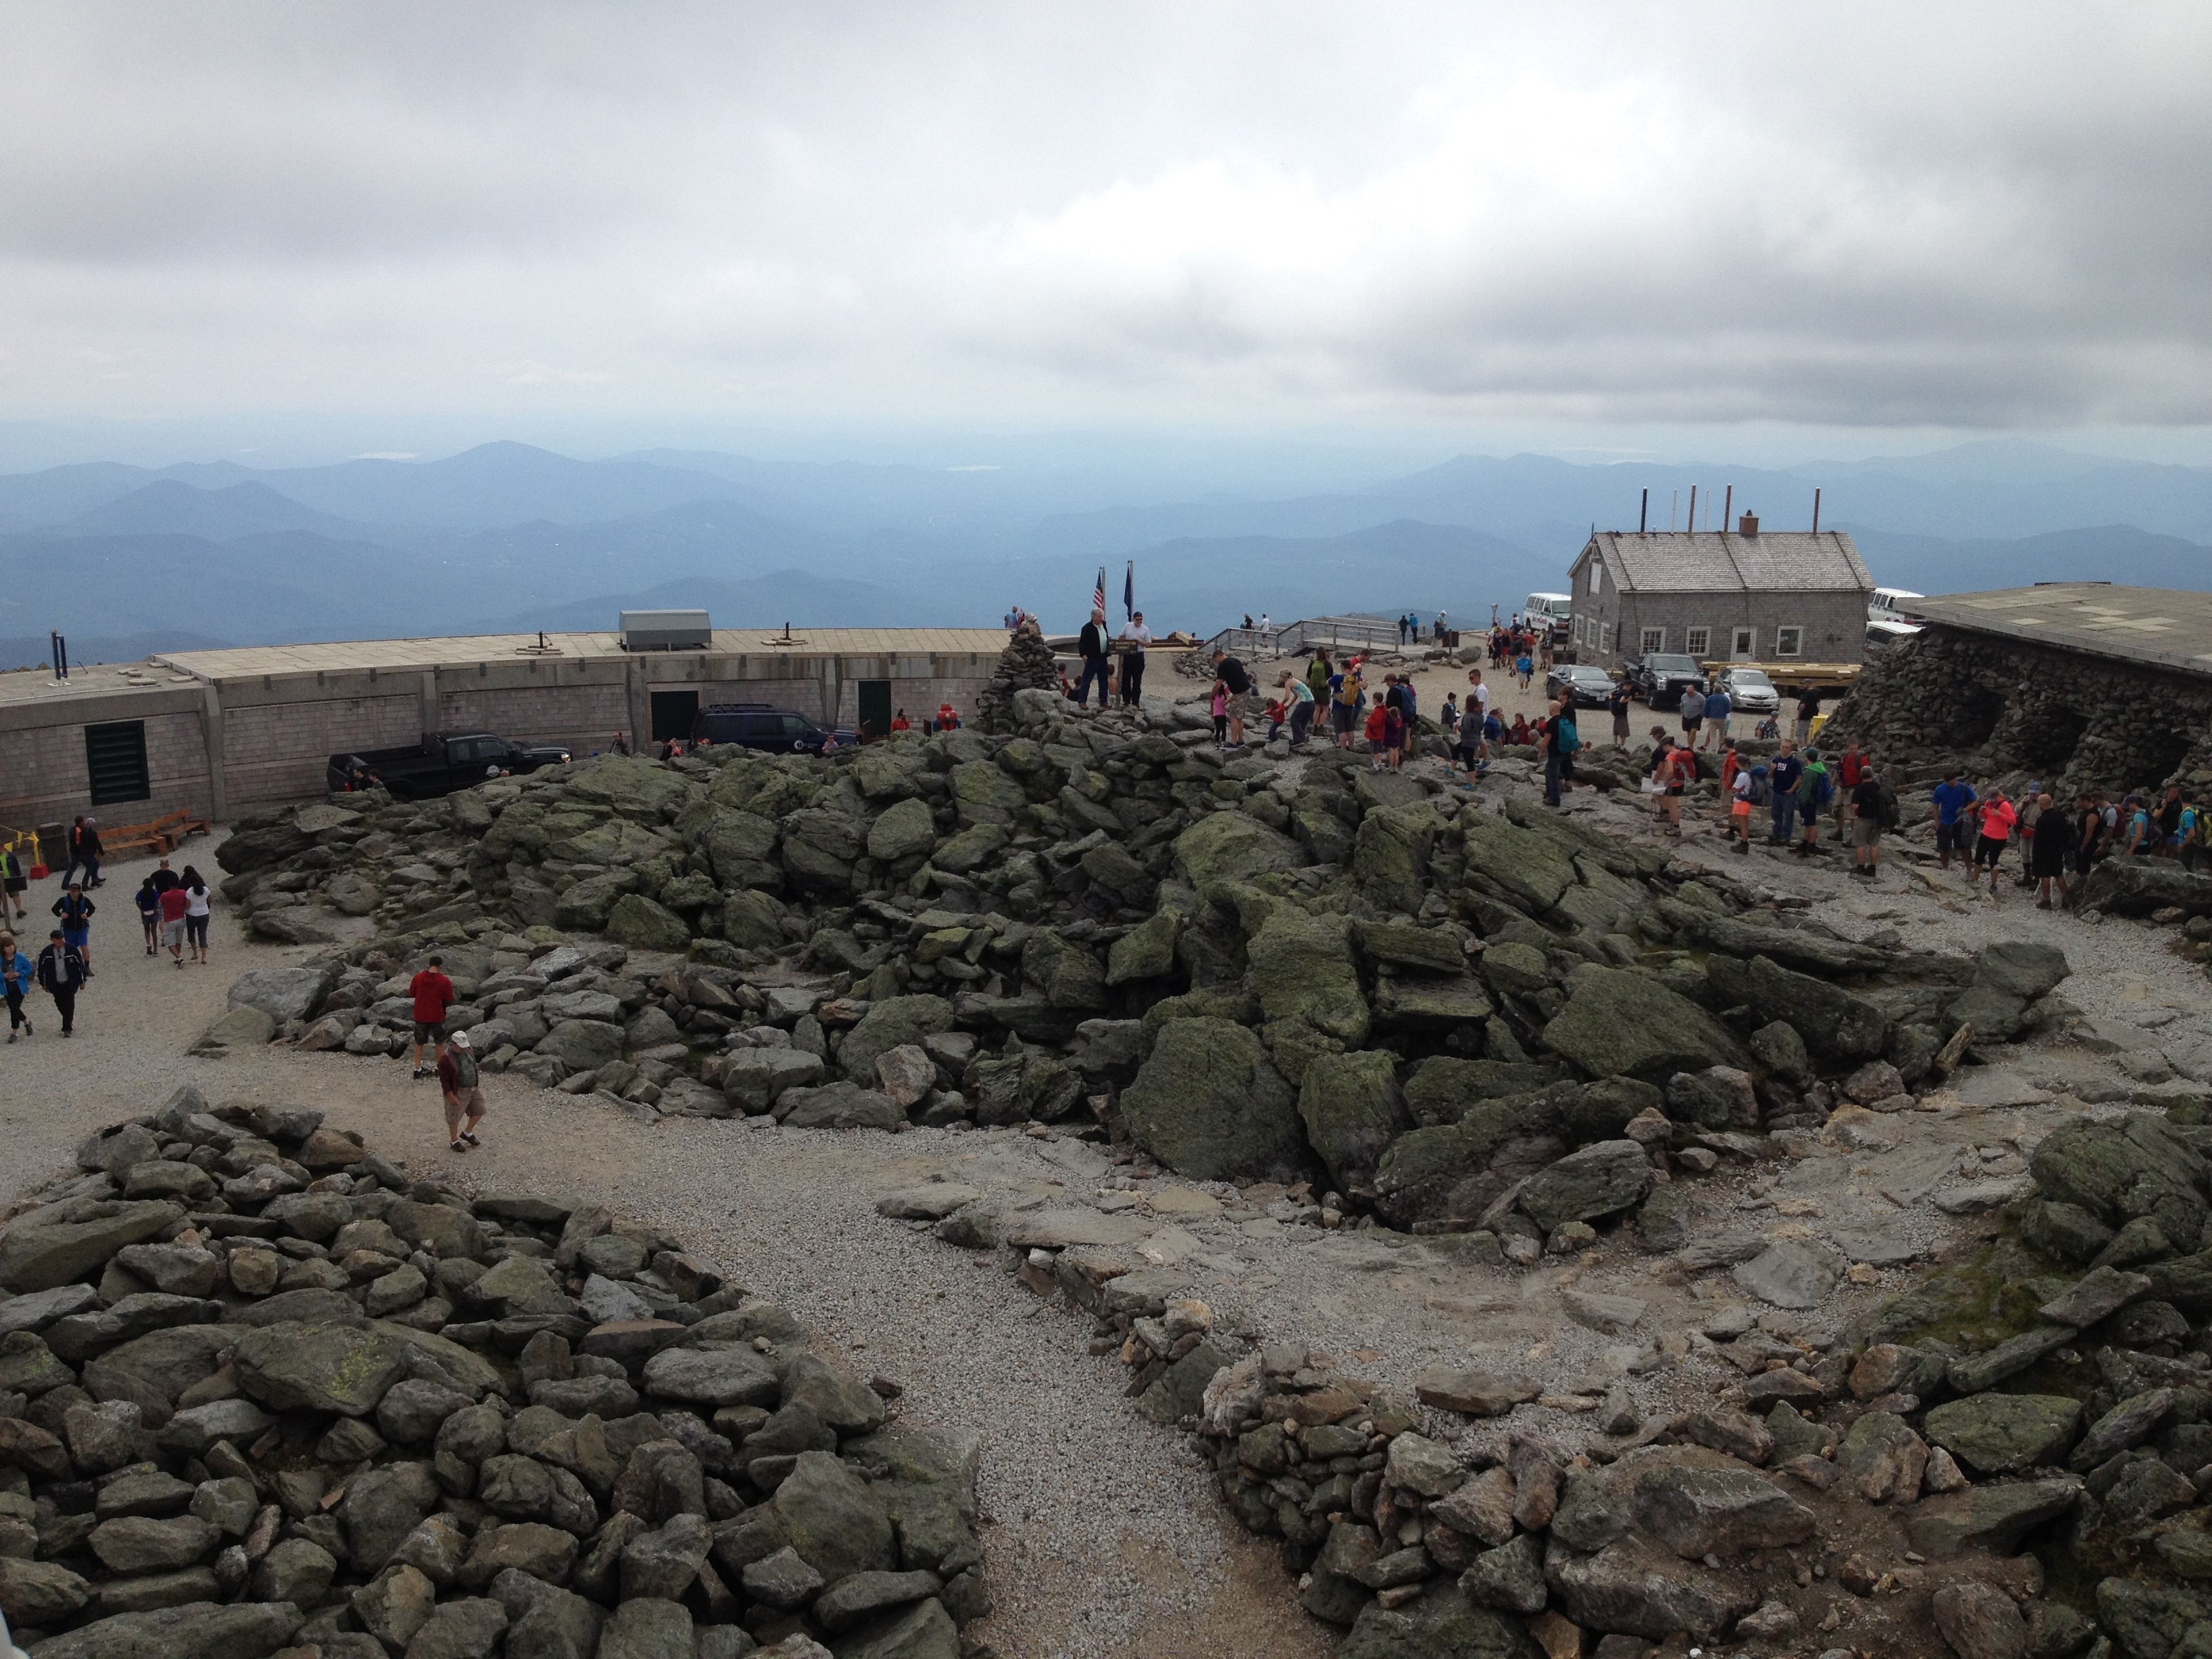 View from an MWO tower overlooking the Mt. Washington summit area.